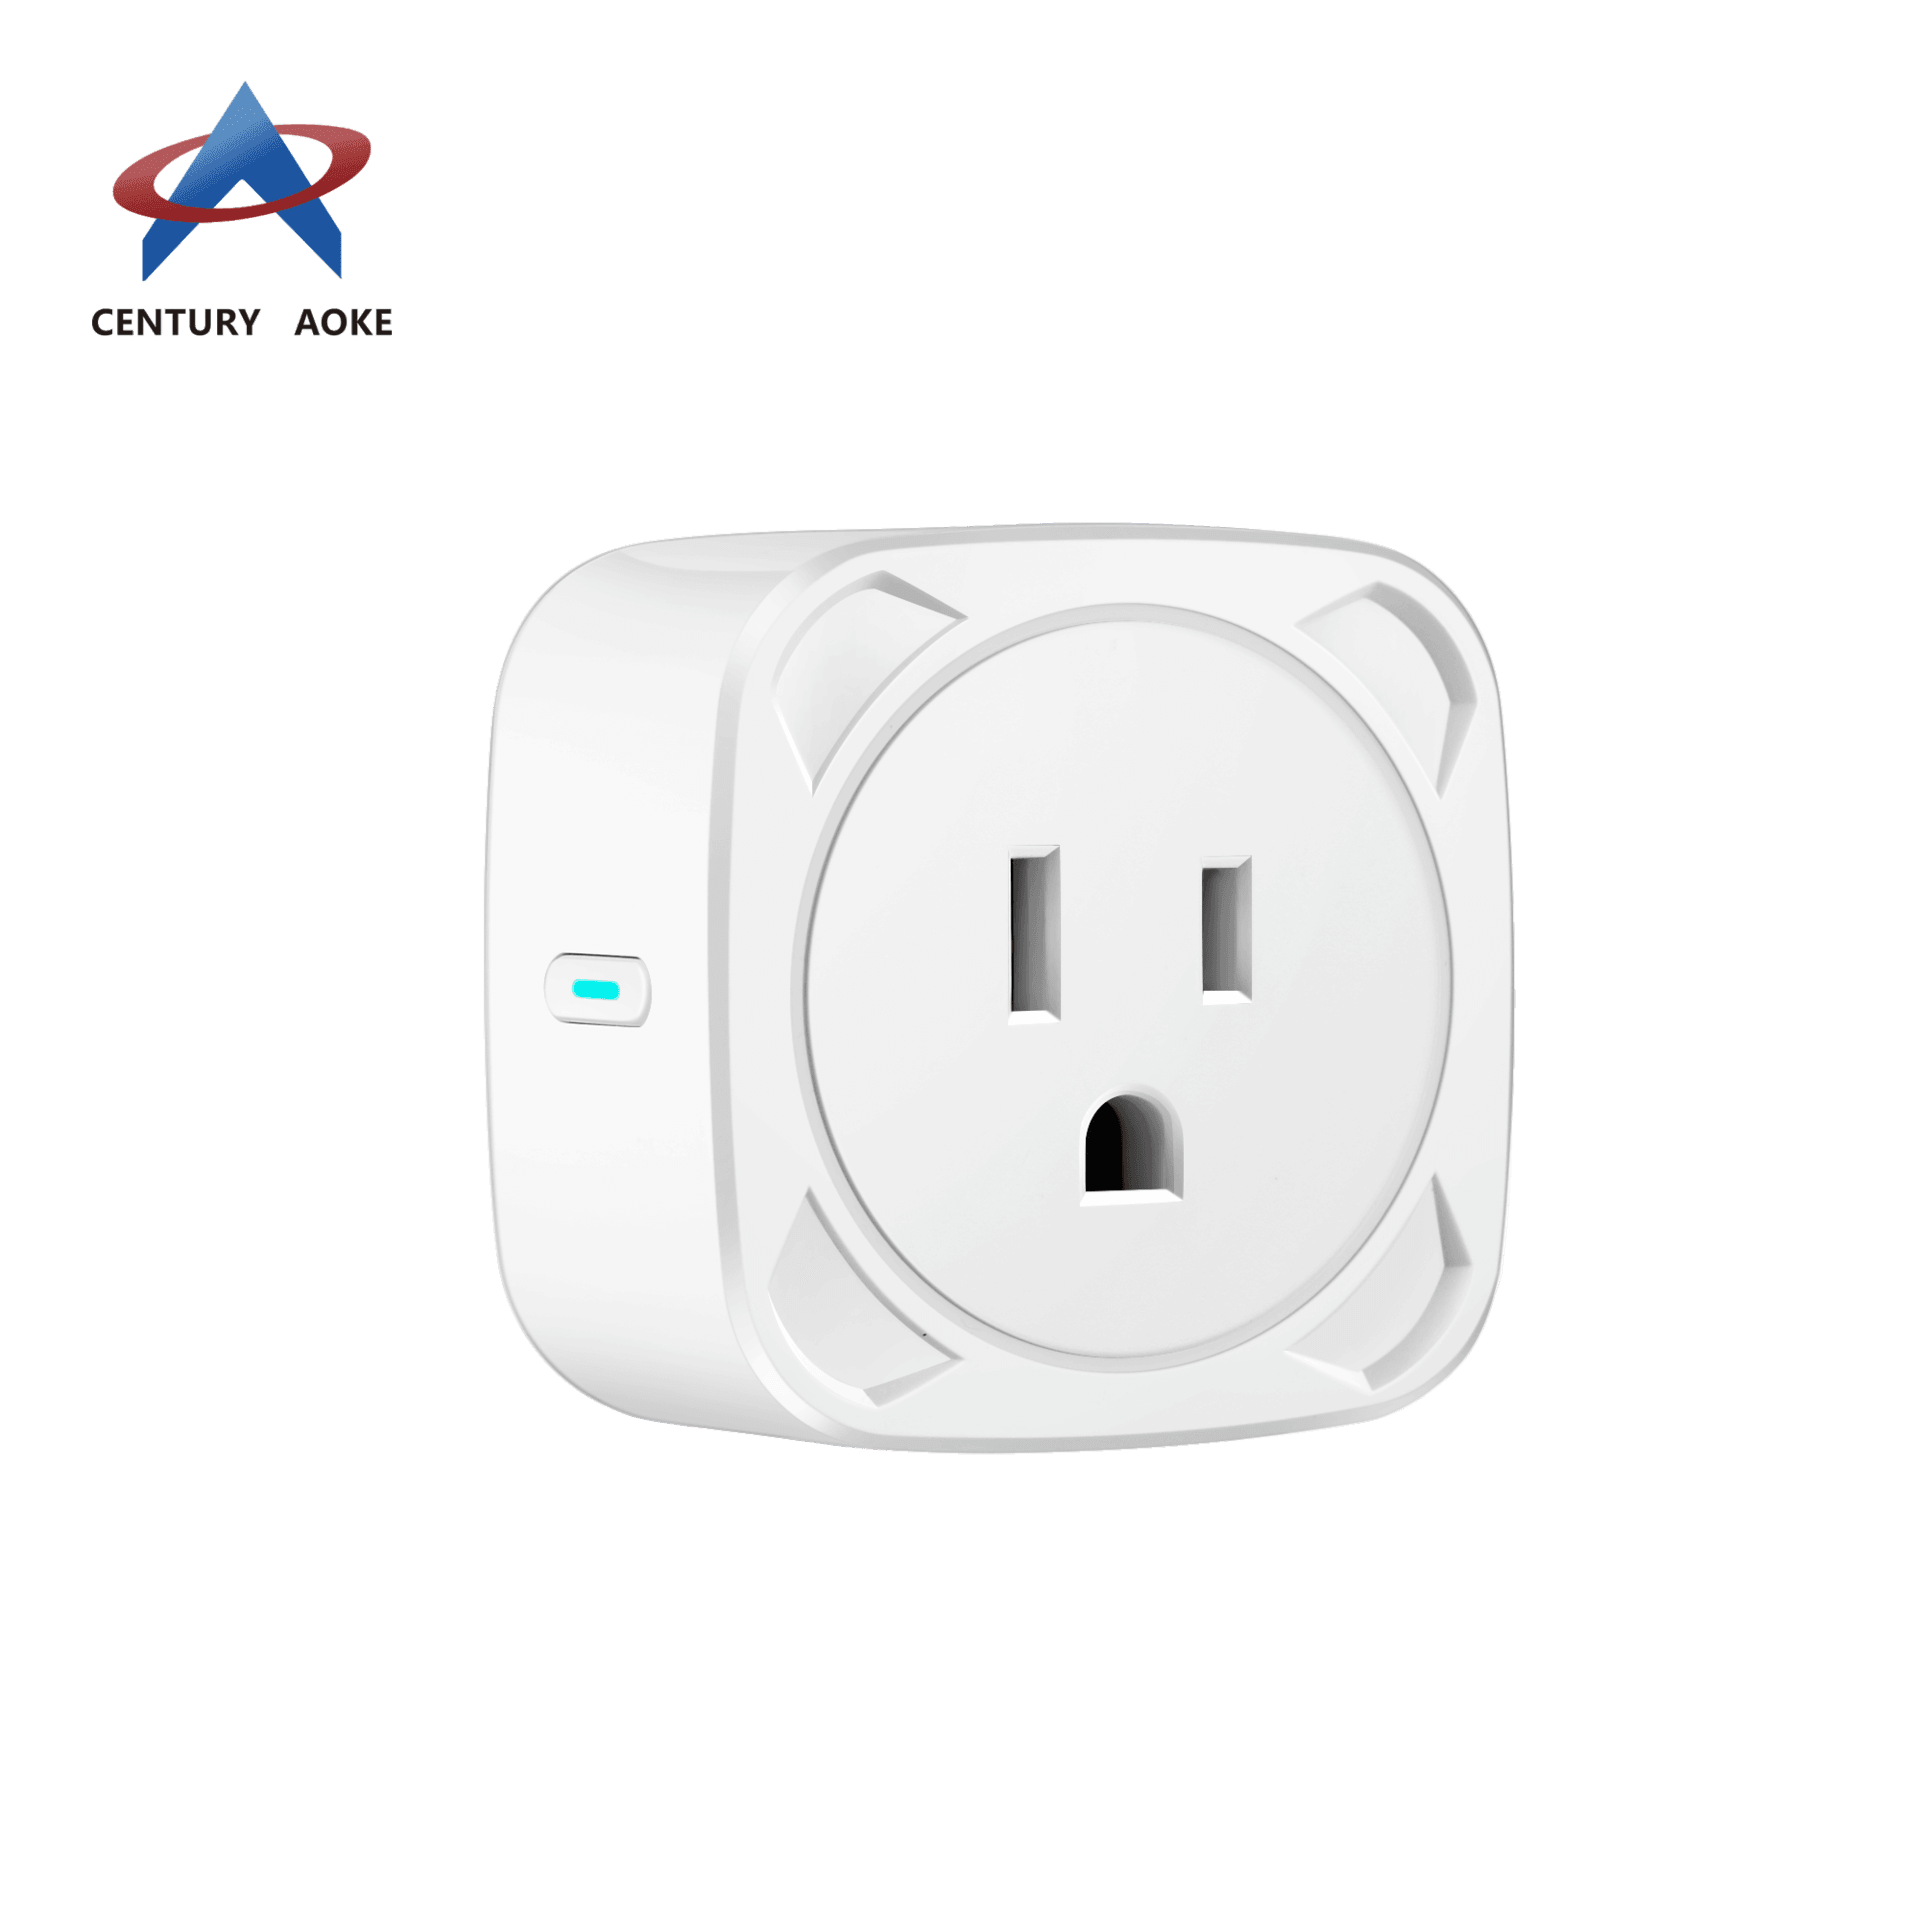 Aoke hot selling best smart outlet best manufacturer used in LED lamps